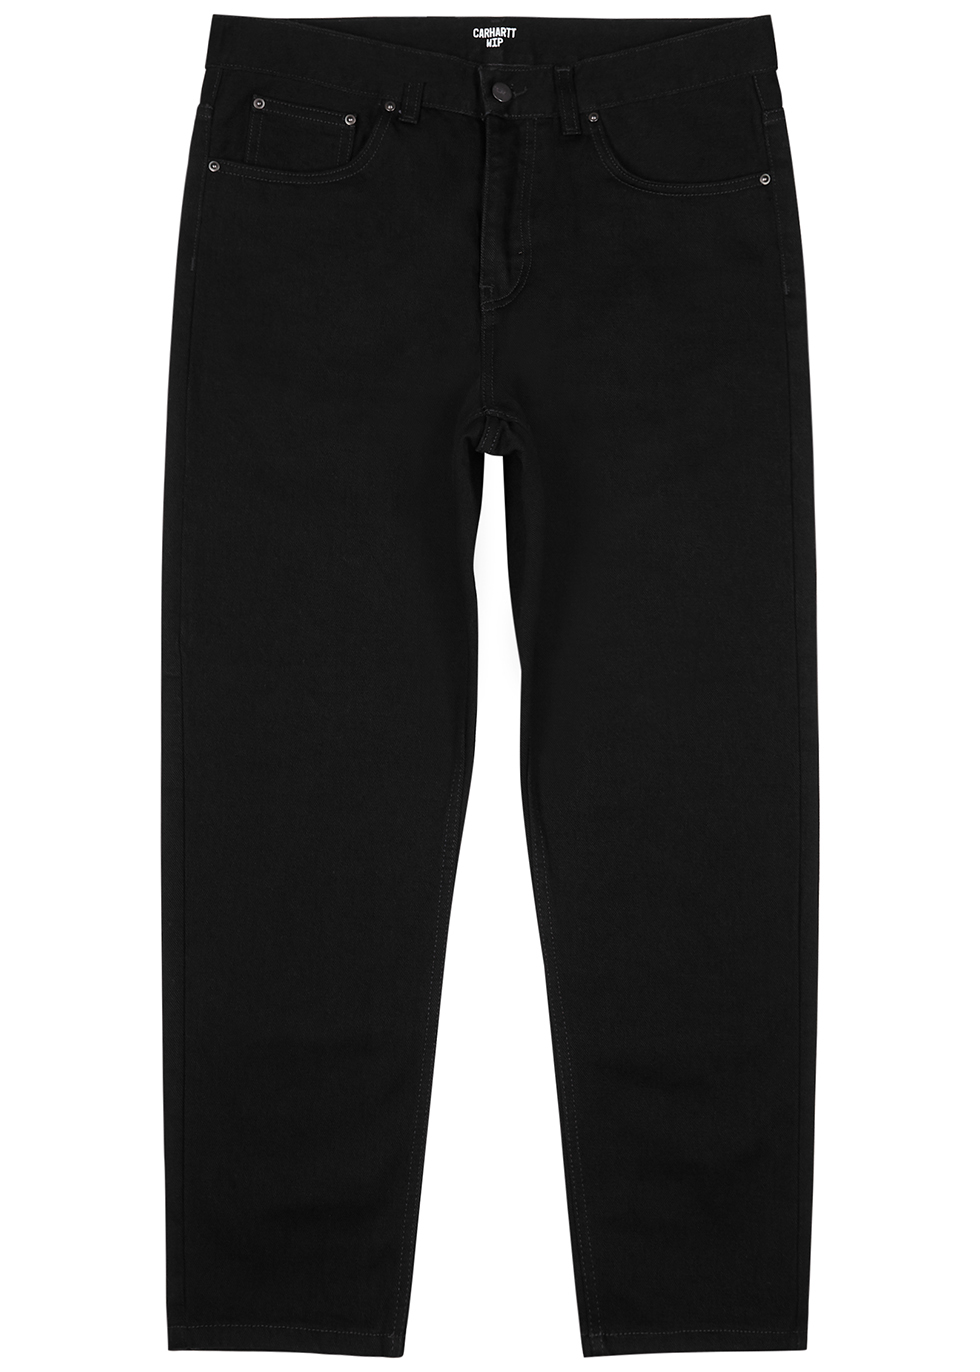 Newel black tapered jeans